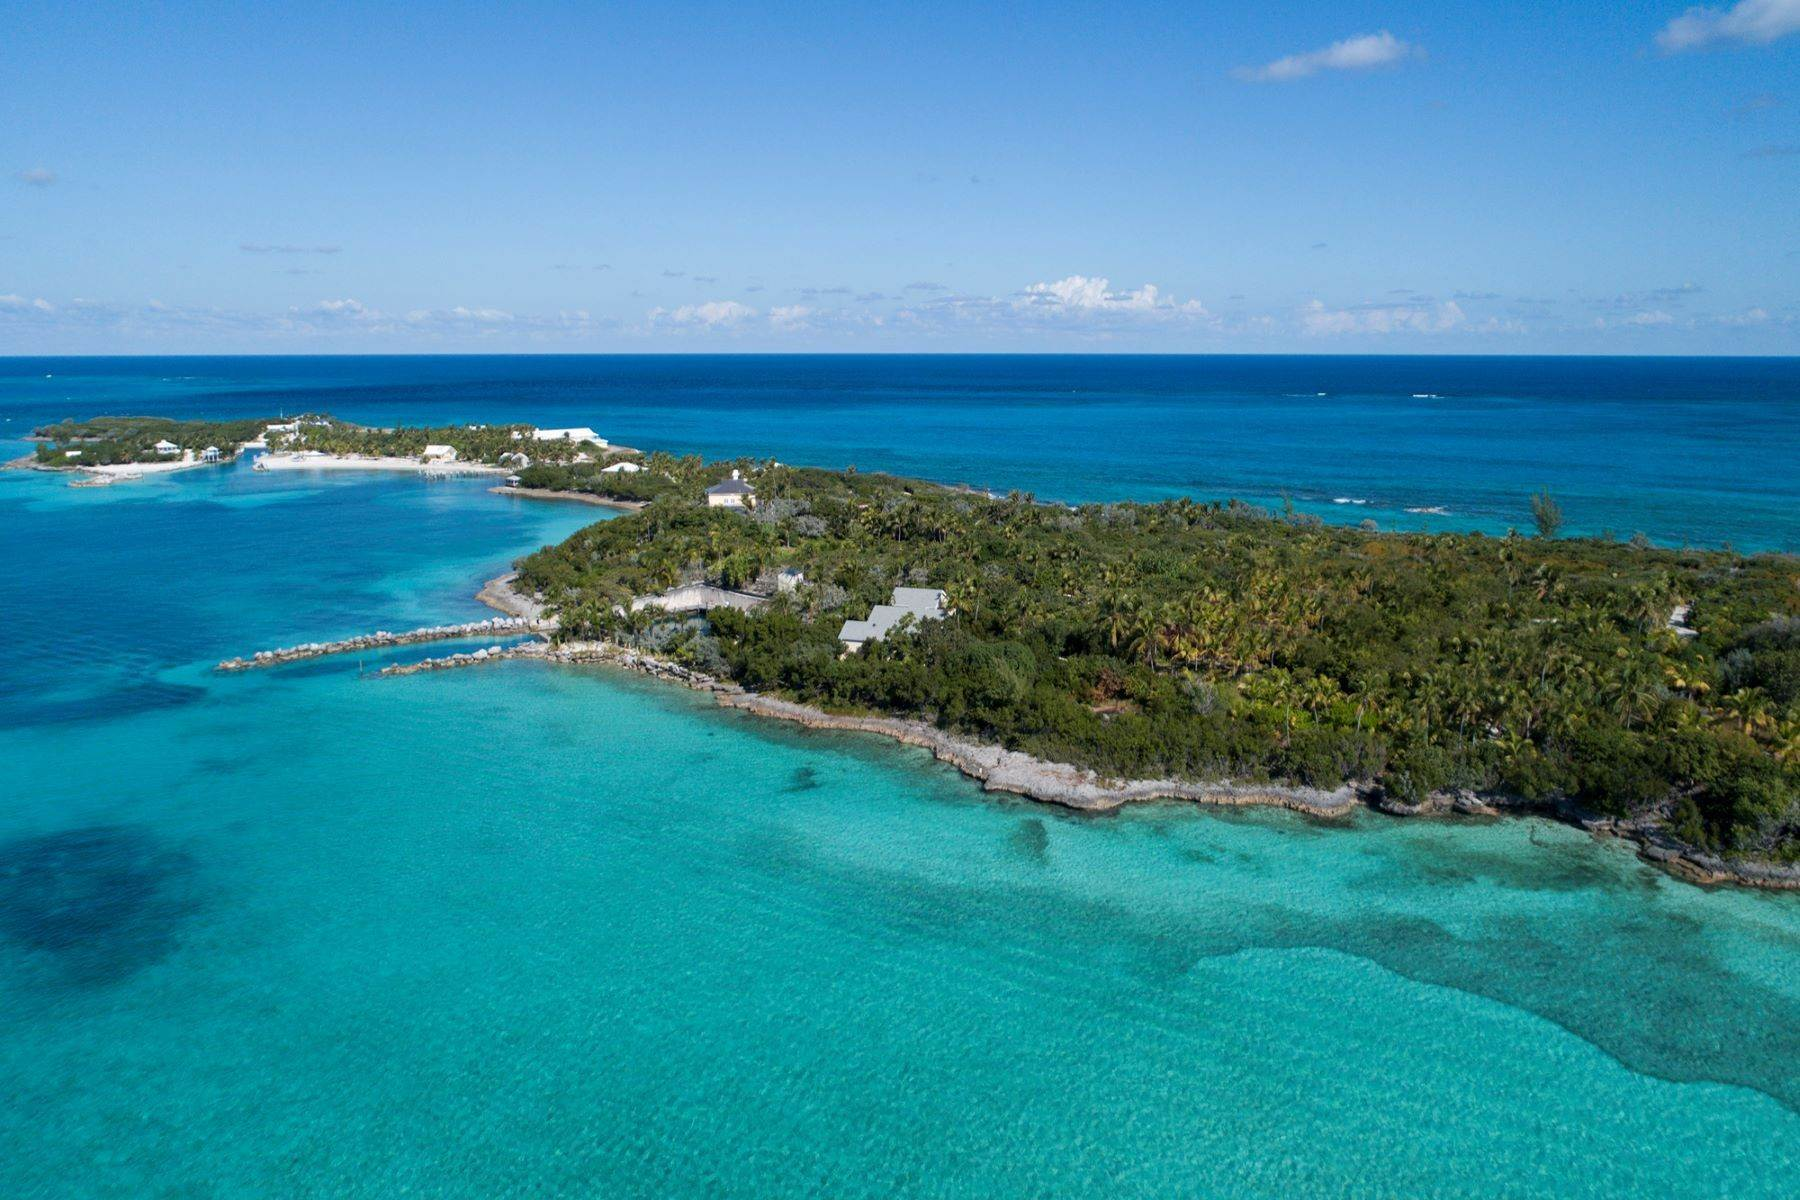 Terreno por un Venta en The Reach Man-O-War Cay, Abaco Bahamas